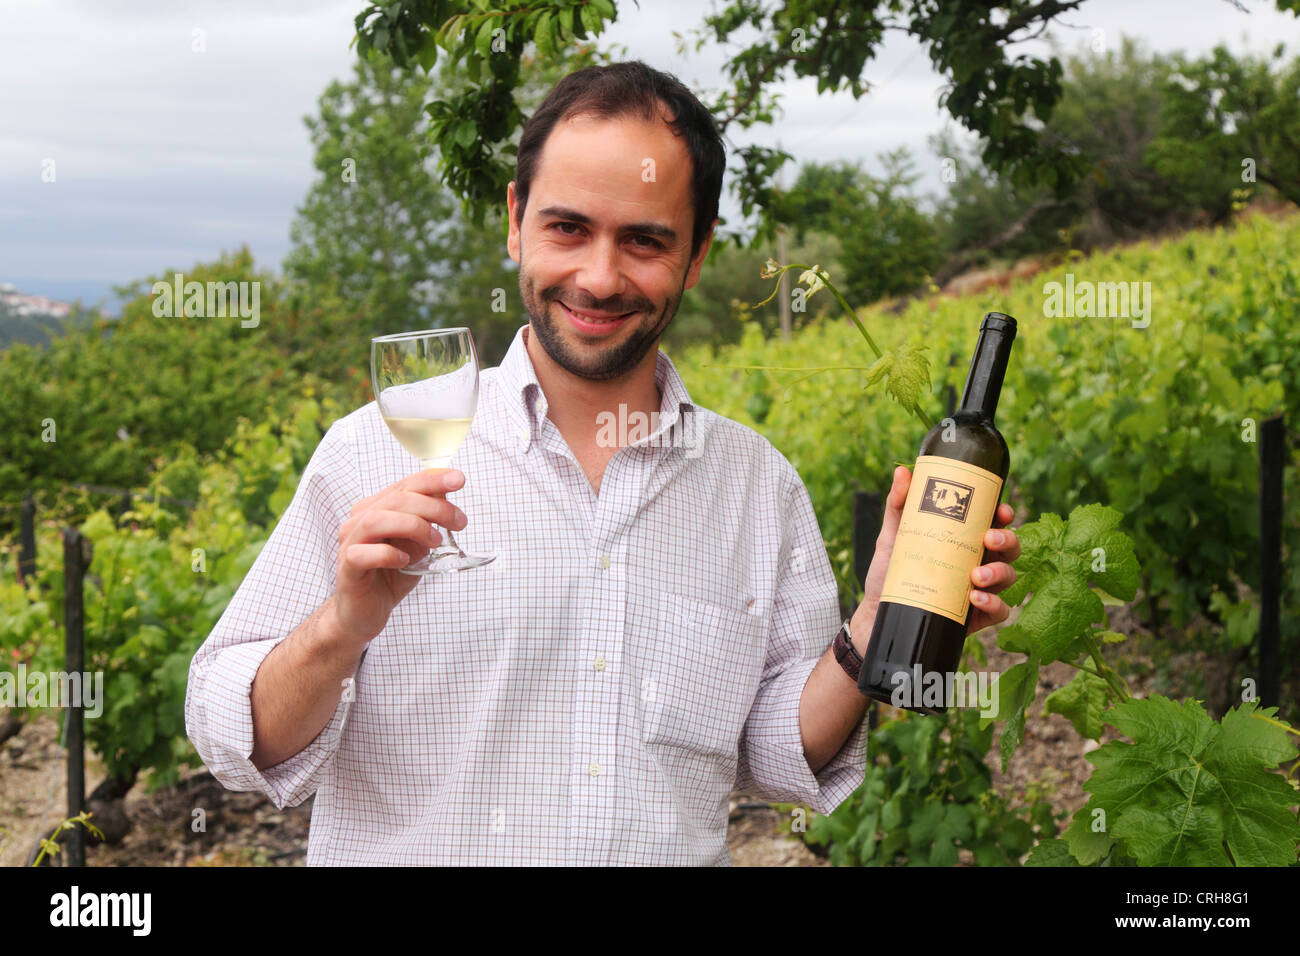 A man (an estate manager) holds up a glass of wine in an estate at the Douro Valley in Portugal. - Stock Image